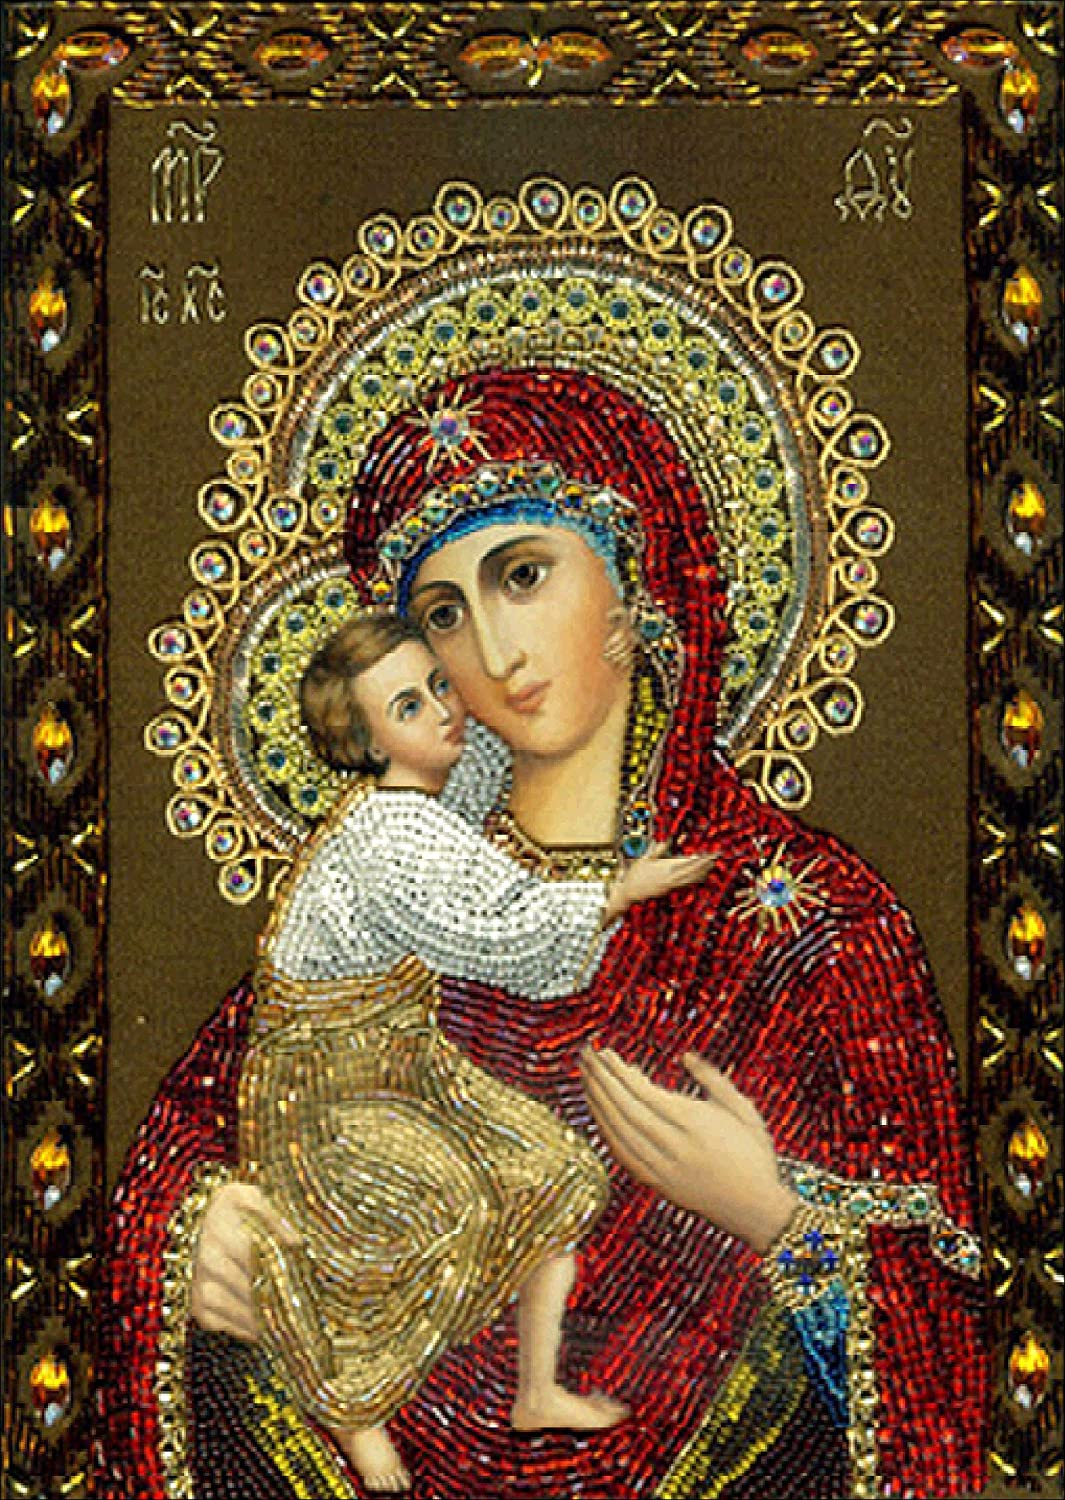 5D DIY Diamond Painting kit Rhinestone Embroidery Cross Stitch Arts for Craft Home Wall Decor,Virgin Mary And Baby Jesus